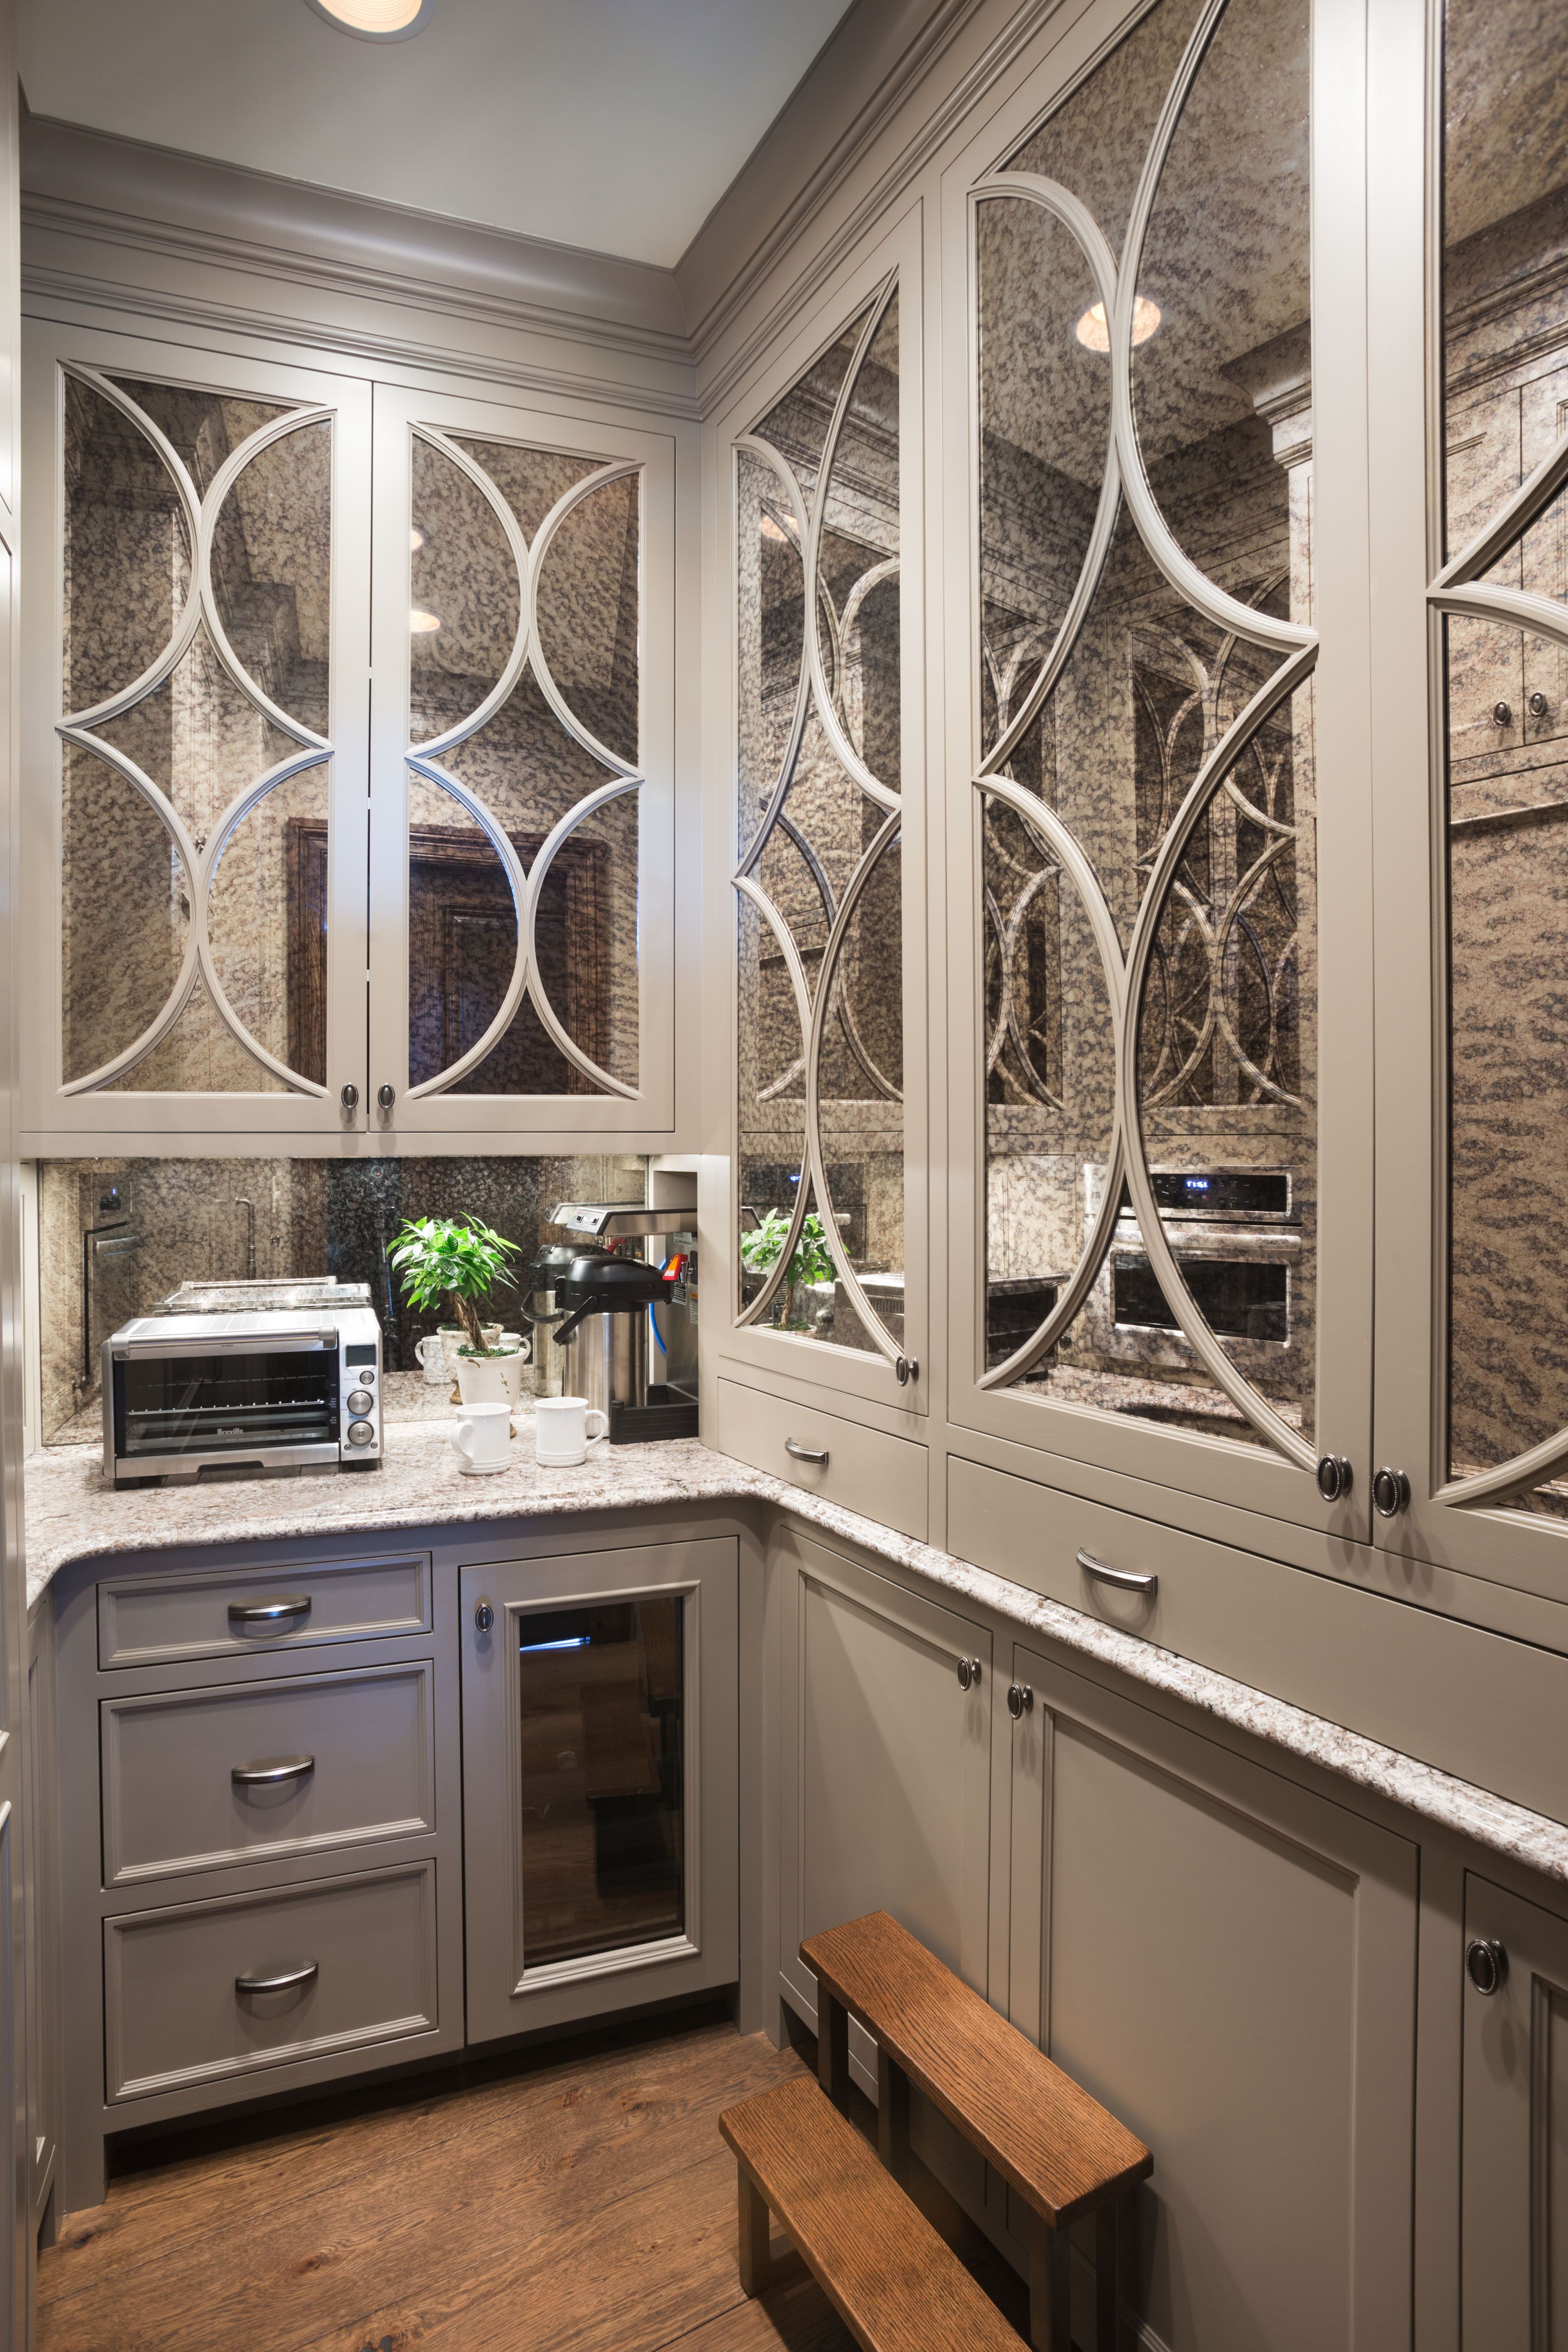 Mirrored Kitchen Cabinets A new residence by Murphy & Co. Design. | Mirrored kitchen cabi